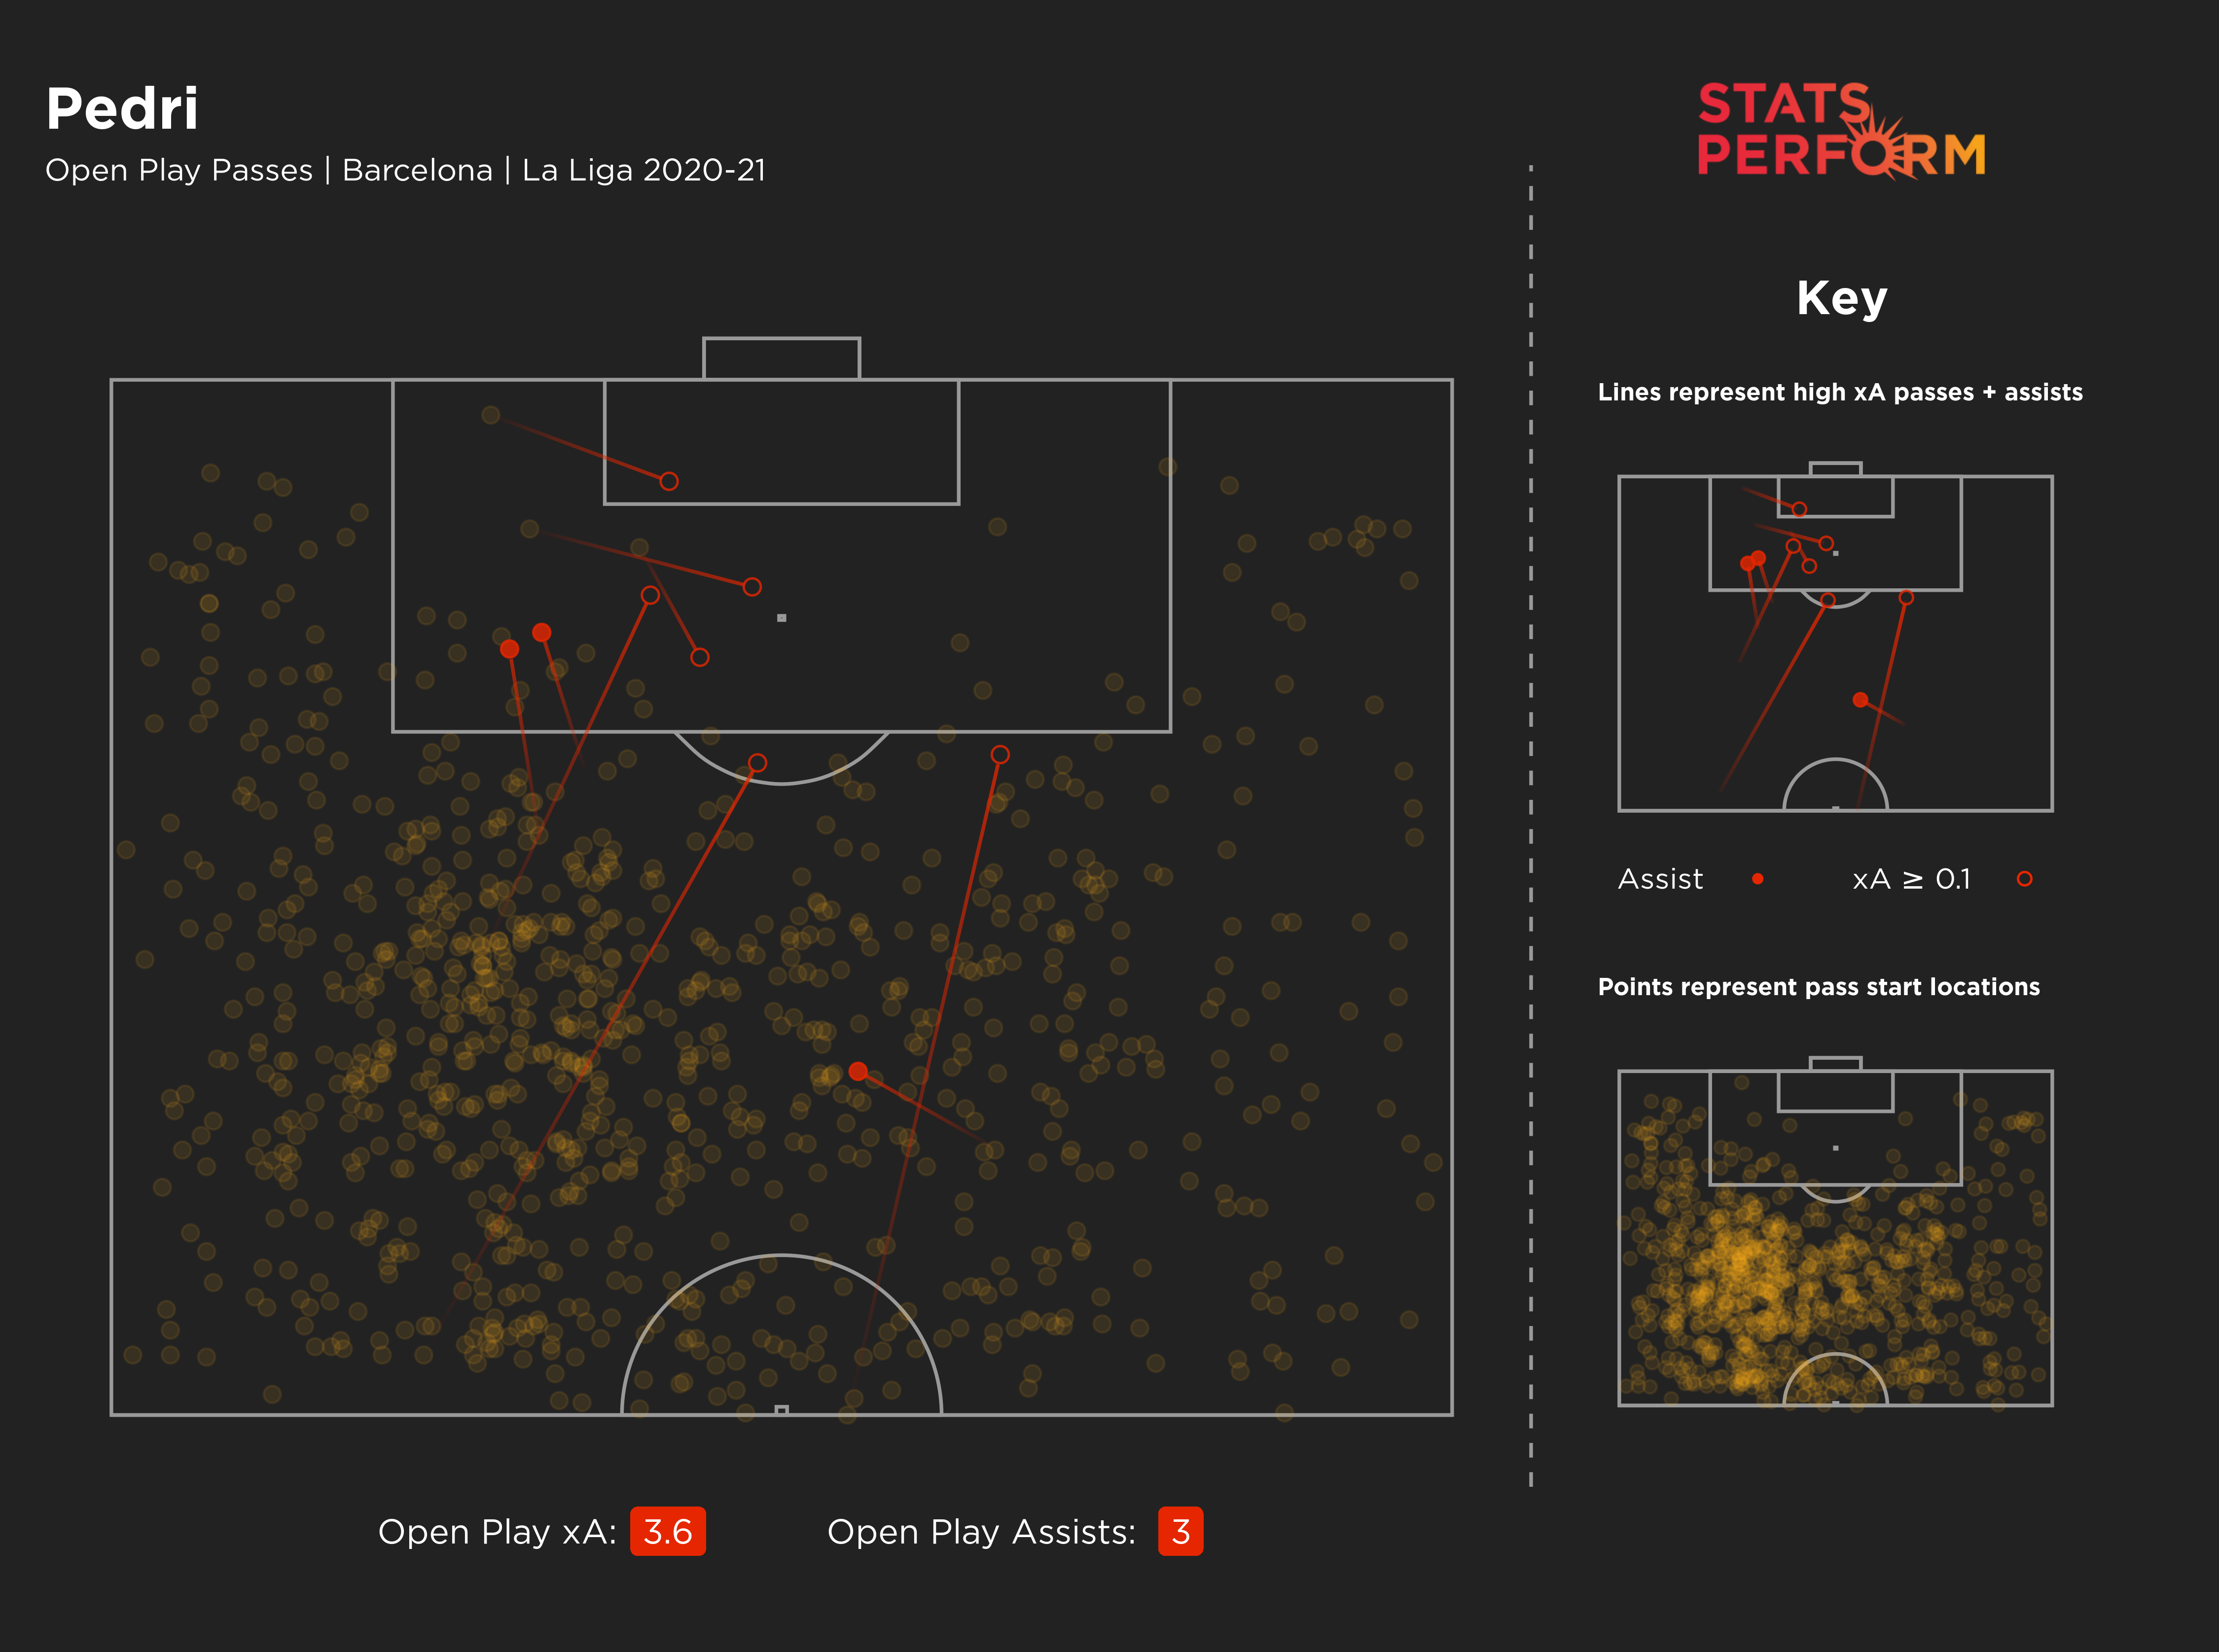 Pedri may not have lots of assists, but there's no doubt he offers a lot to Barcelona